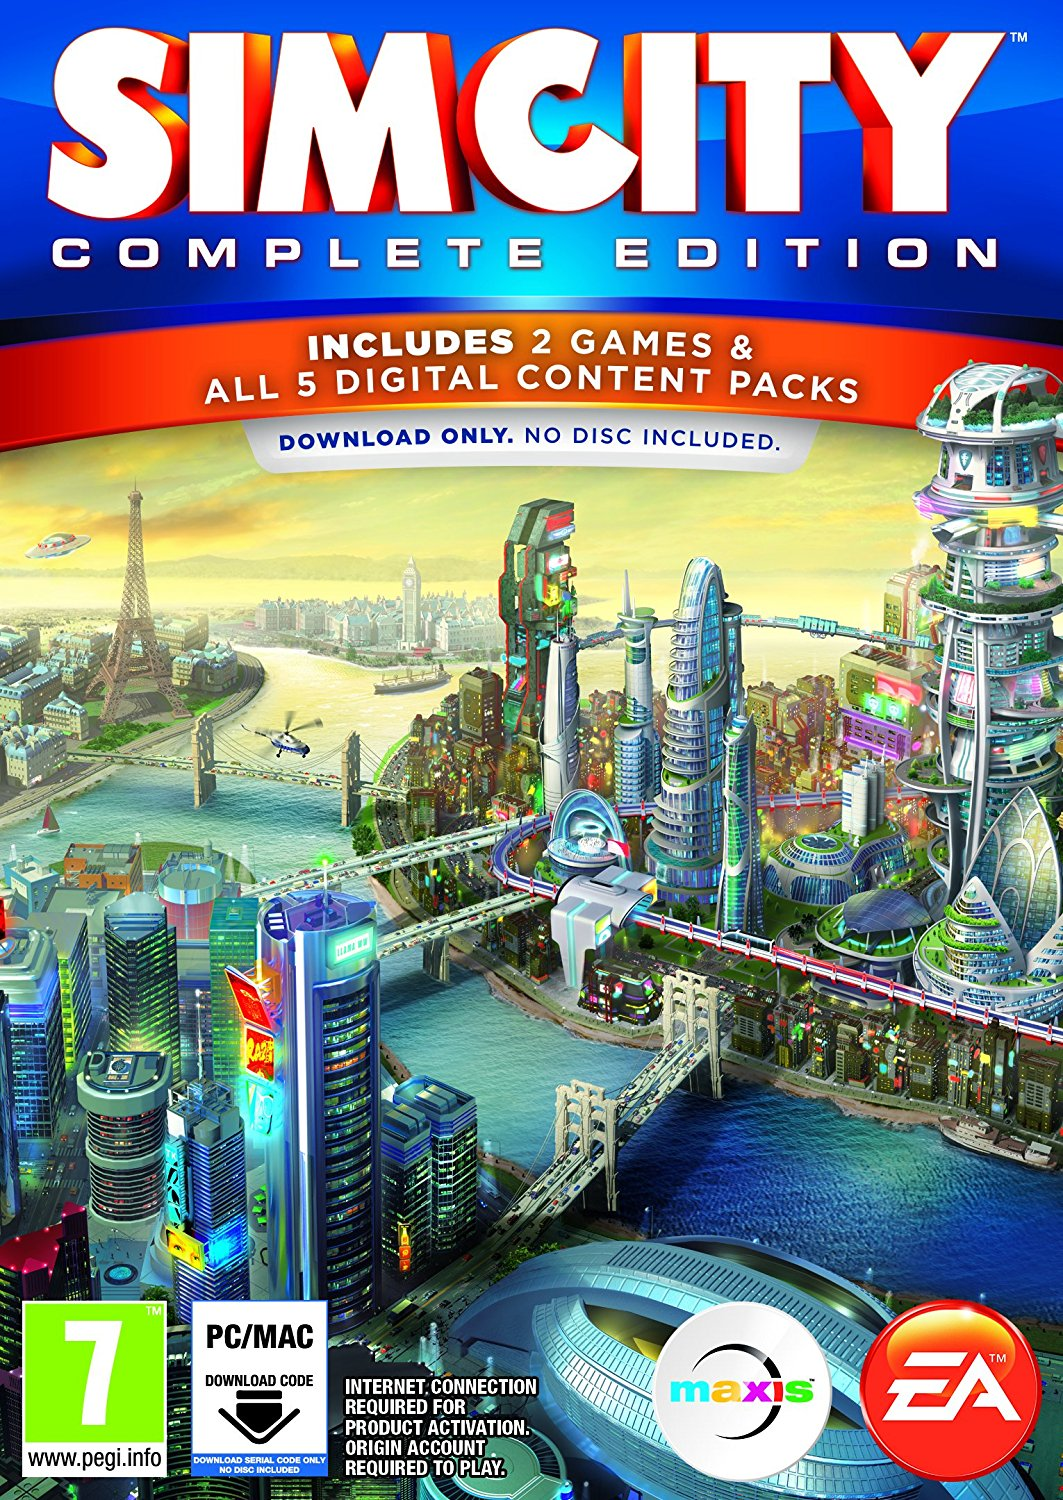 Simcity hits retail and digital download geeky gadgets.